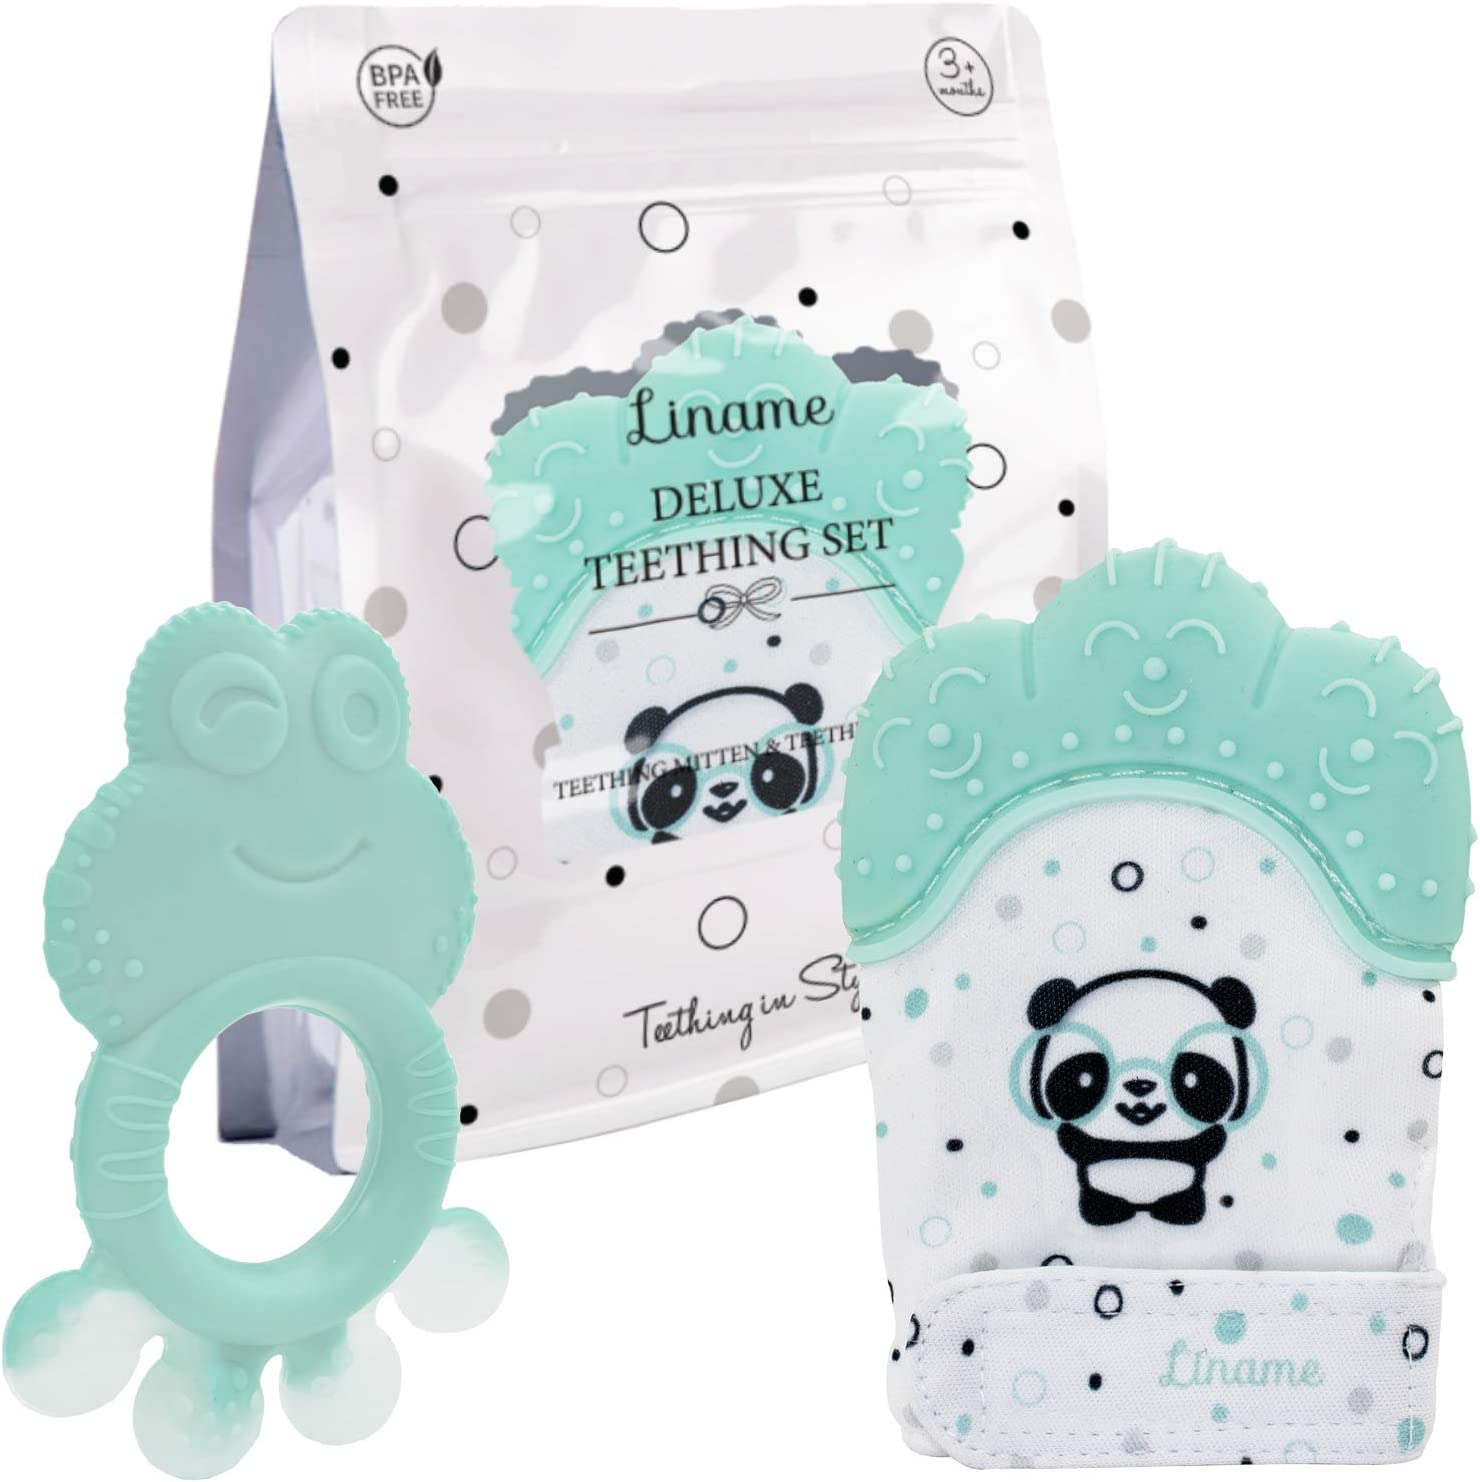 Provides Soothing Relief /& Solves Your Babies Teething Problems Liname Deluxe Teething Set Includes Teething Mitten for Babies /& Teething Toy Safe BPA Free Washable Teething Mitt